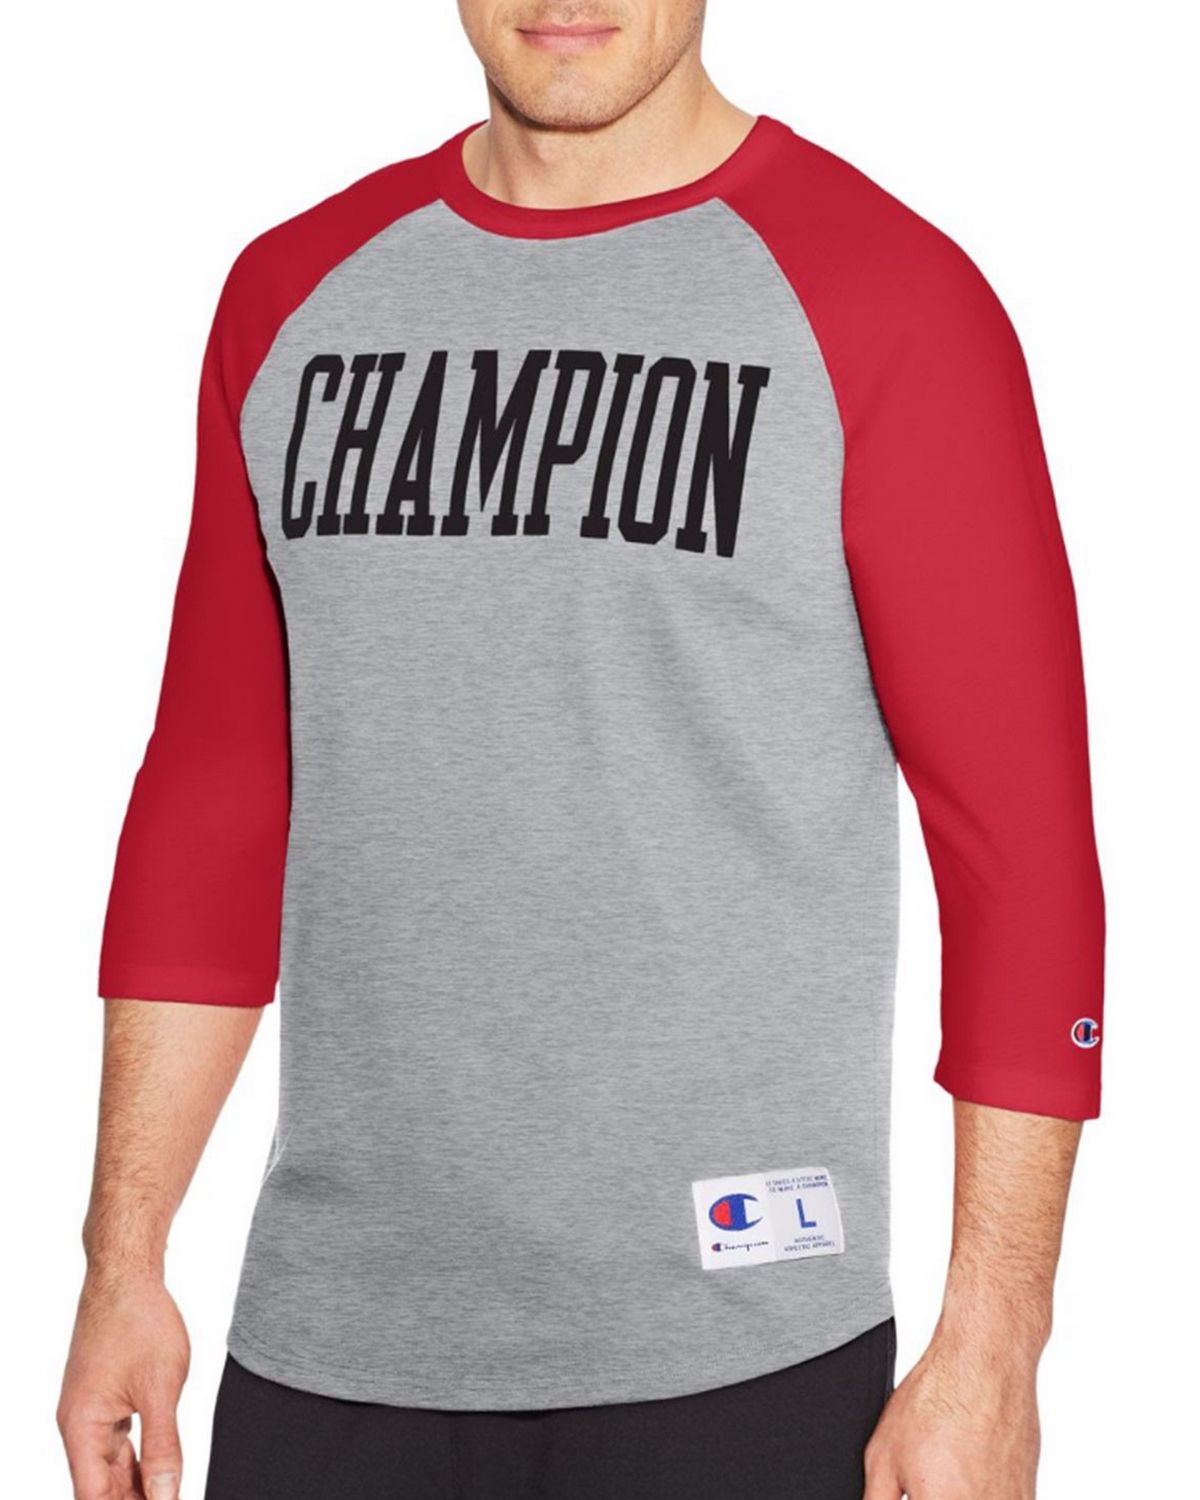 Champion T1234 Mens Slub Tee - Oxford Grey/Fire Roasted Red - XL T1234